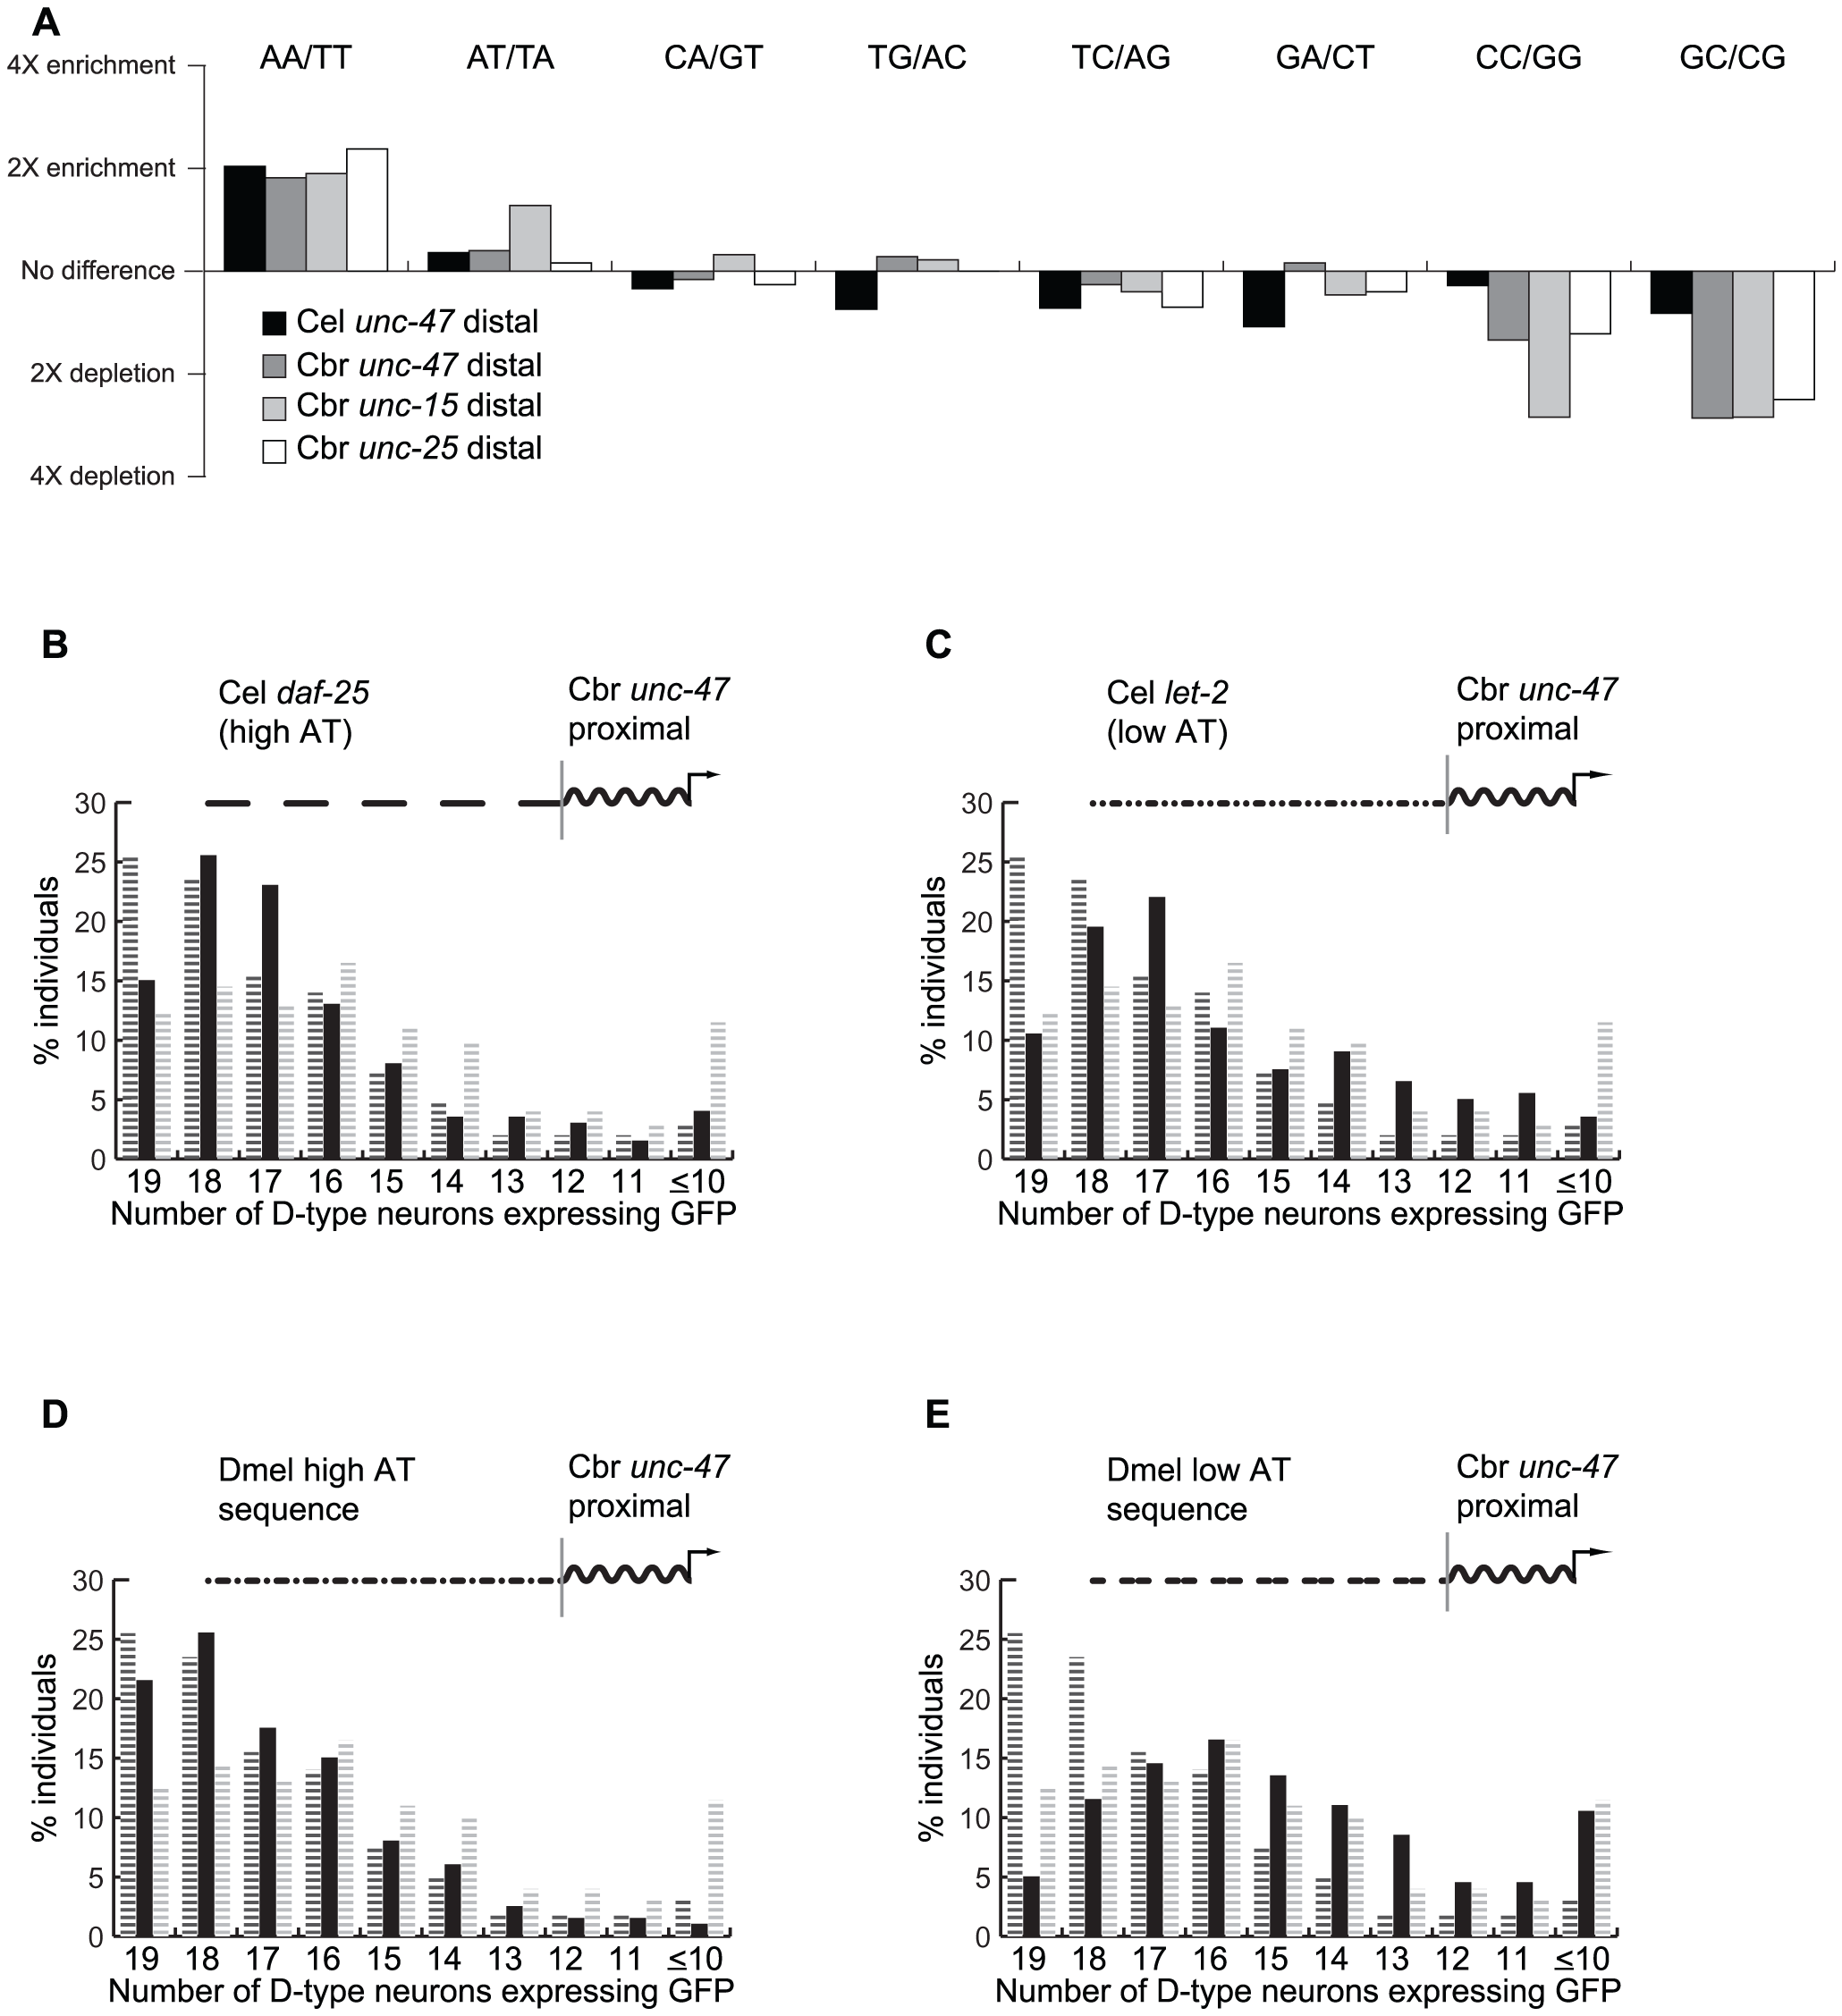 Promoter regions that confer robustness are enriched for nucleosome-depleted sequences.